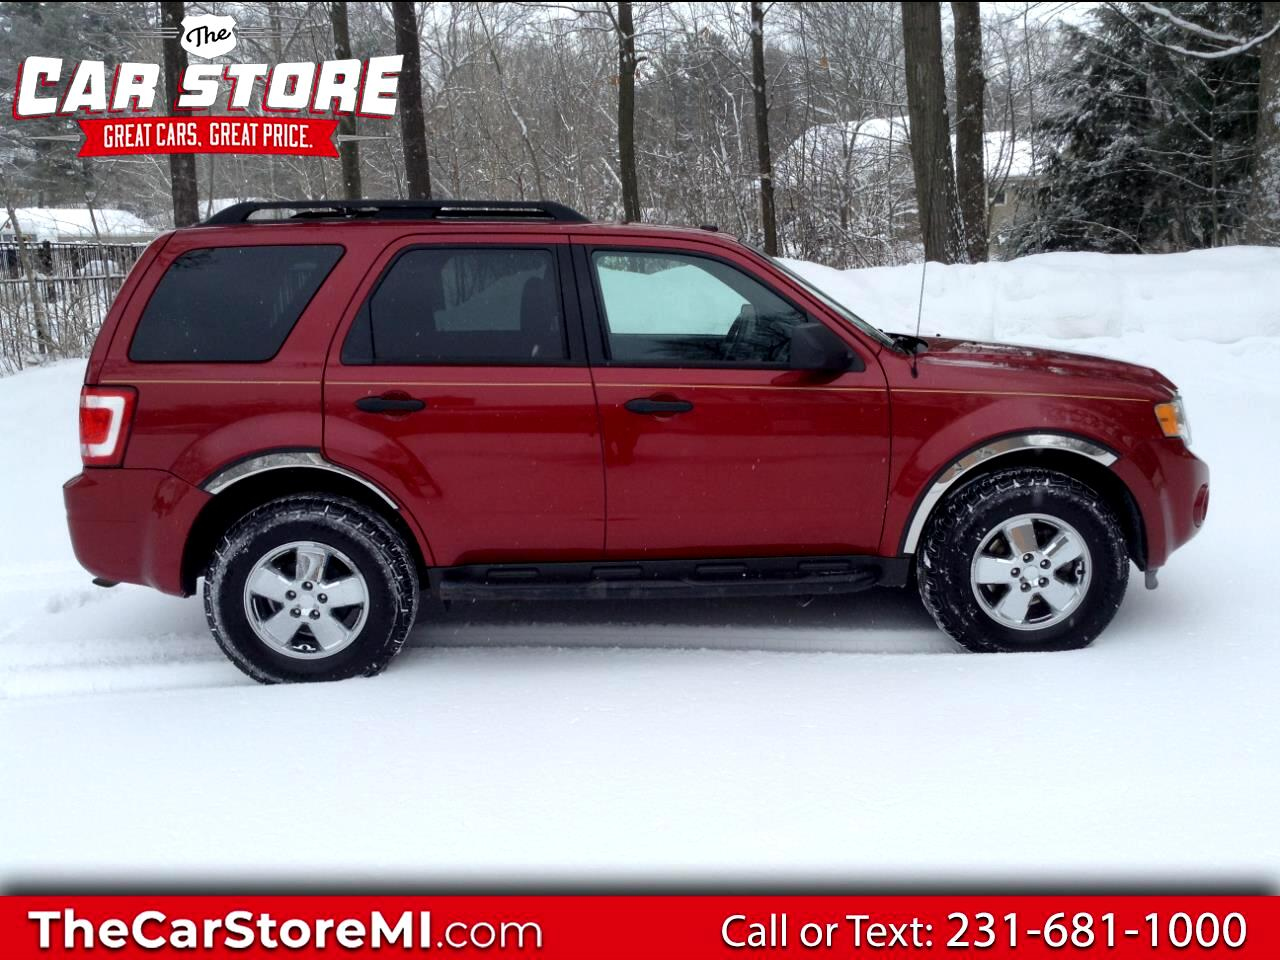 Ford Escape FWD 4dr I4 Auto XLT 2009